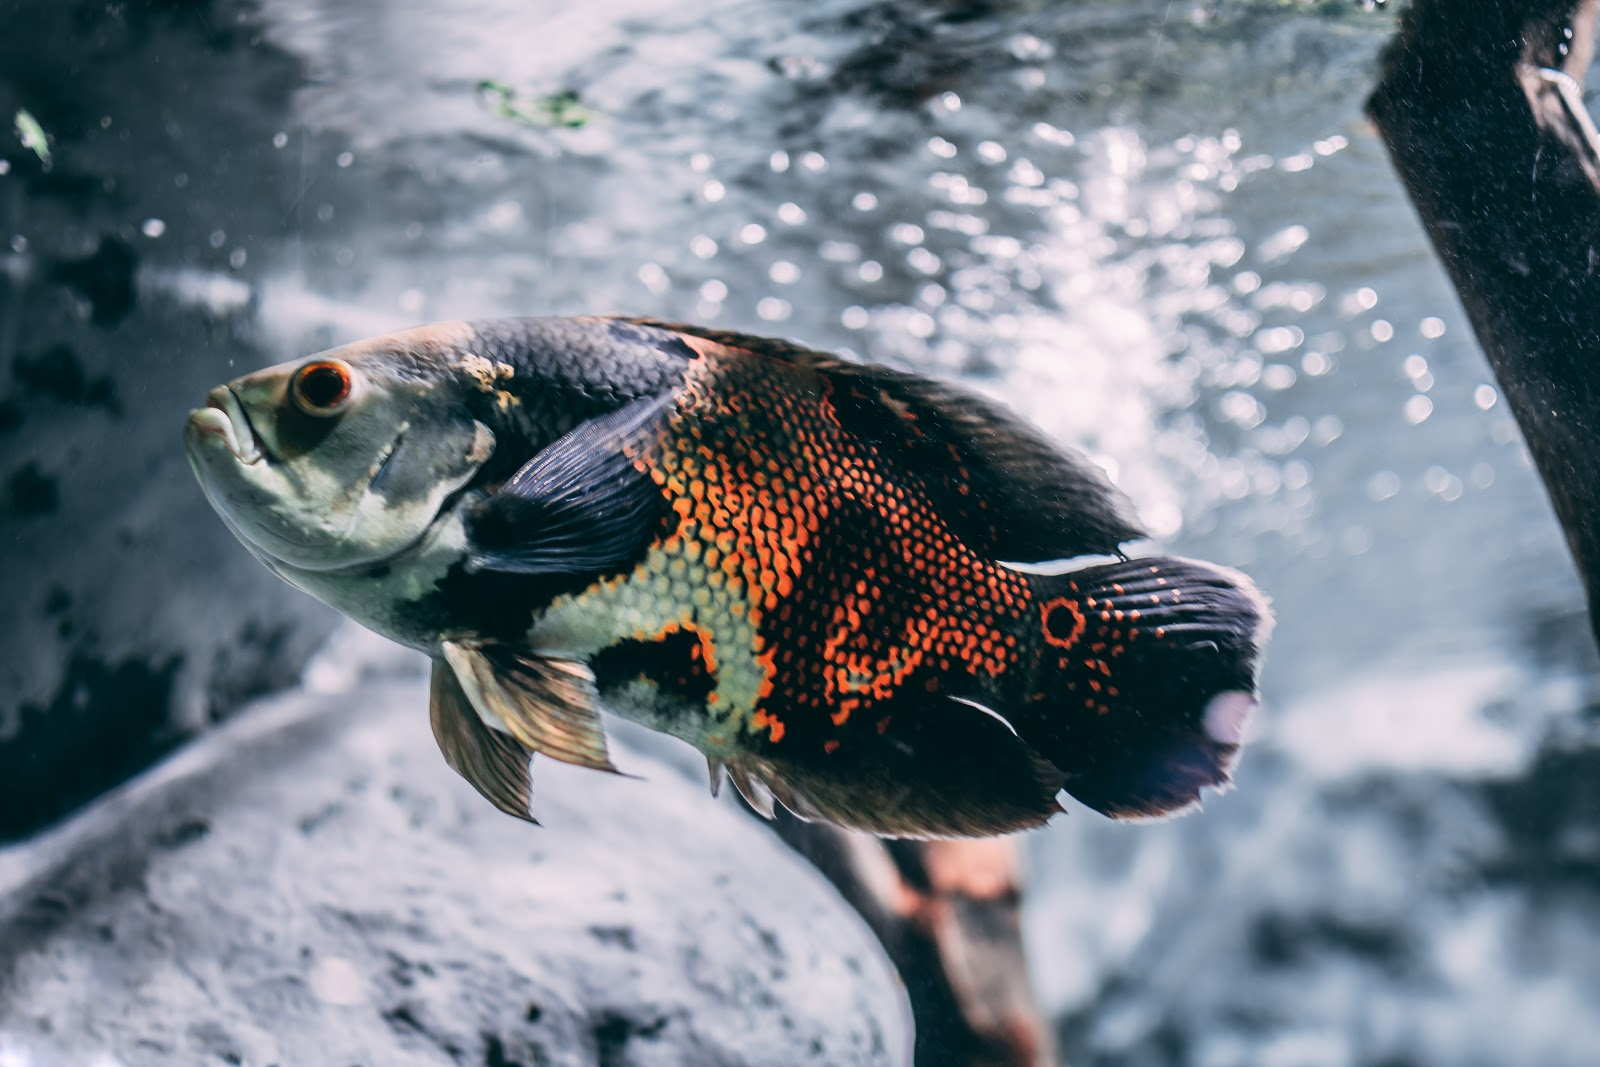 brown-silver-and-black-oscar-fish-images